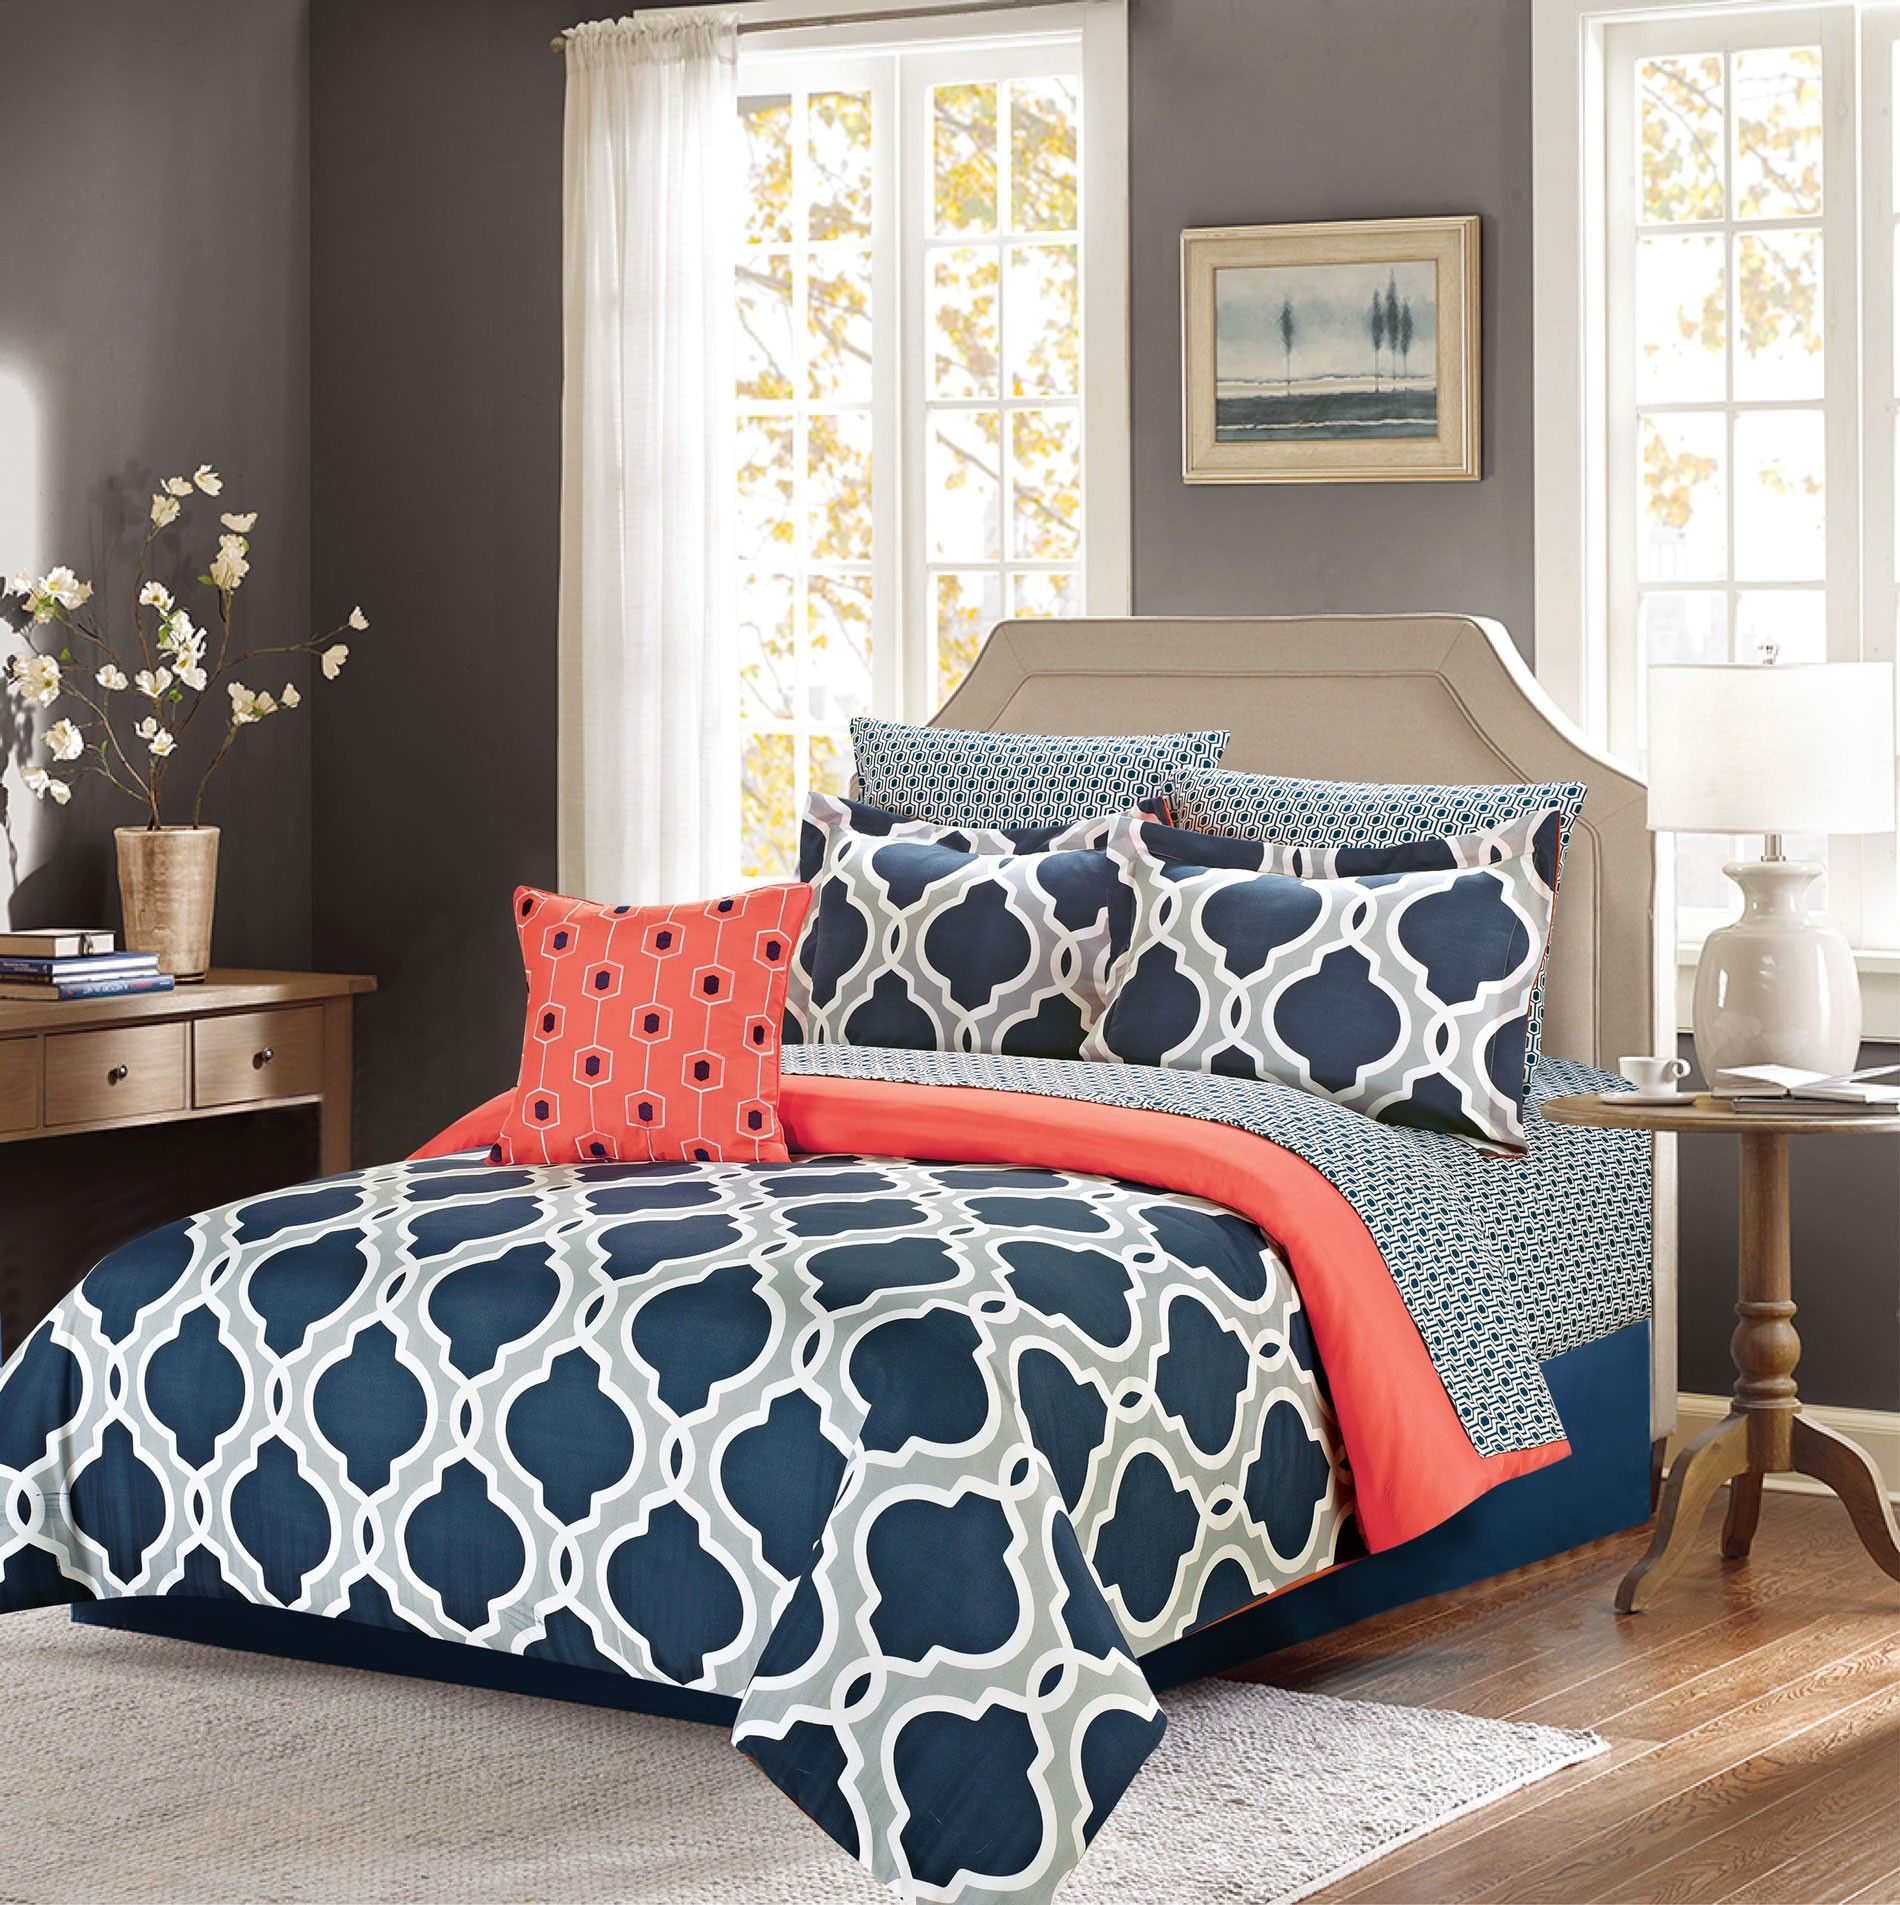 ellen westbury king comforter bedding set with sheets navy blue and grey quatrefoil 8 pc bed in a bag - Navy Bedding